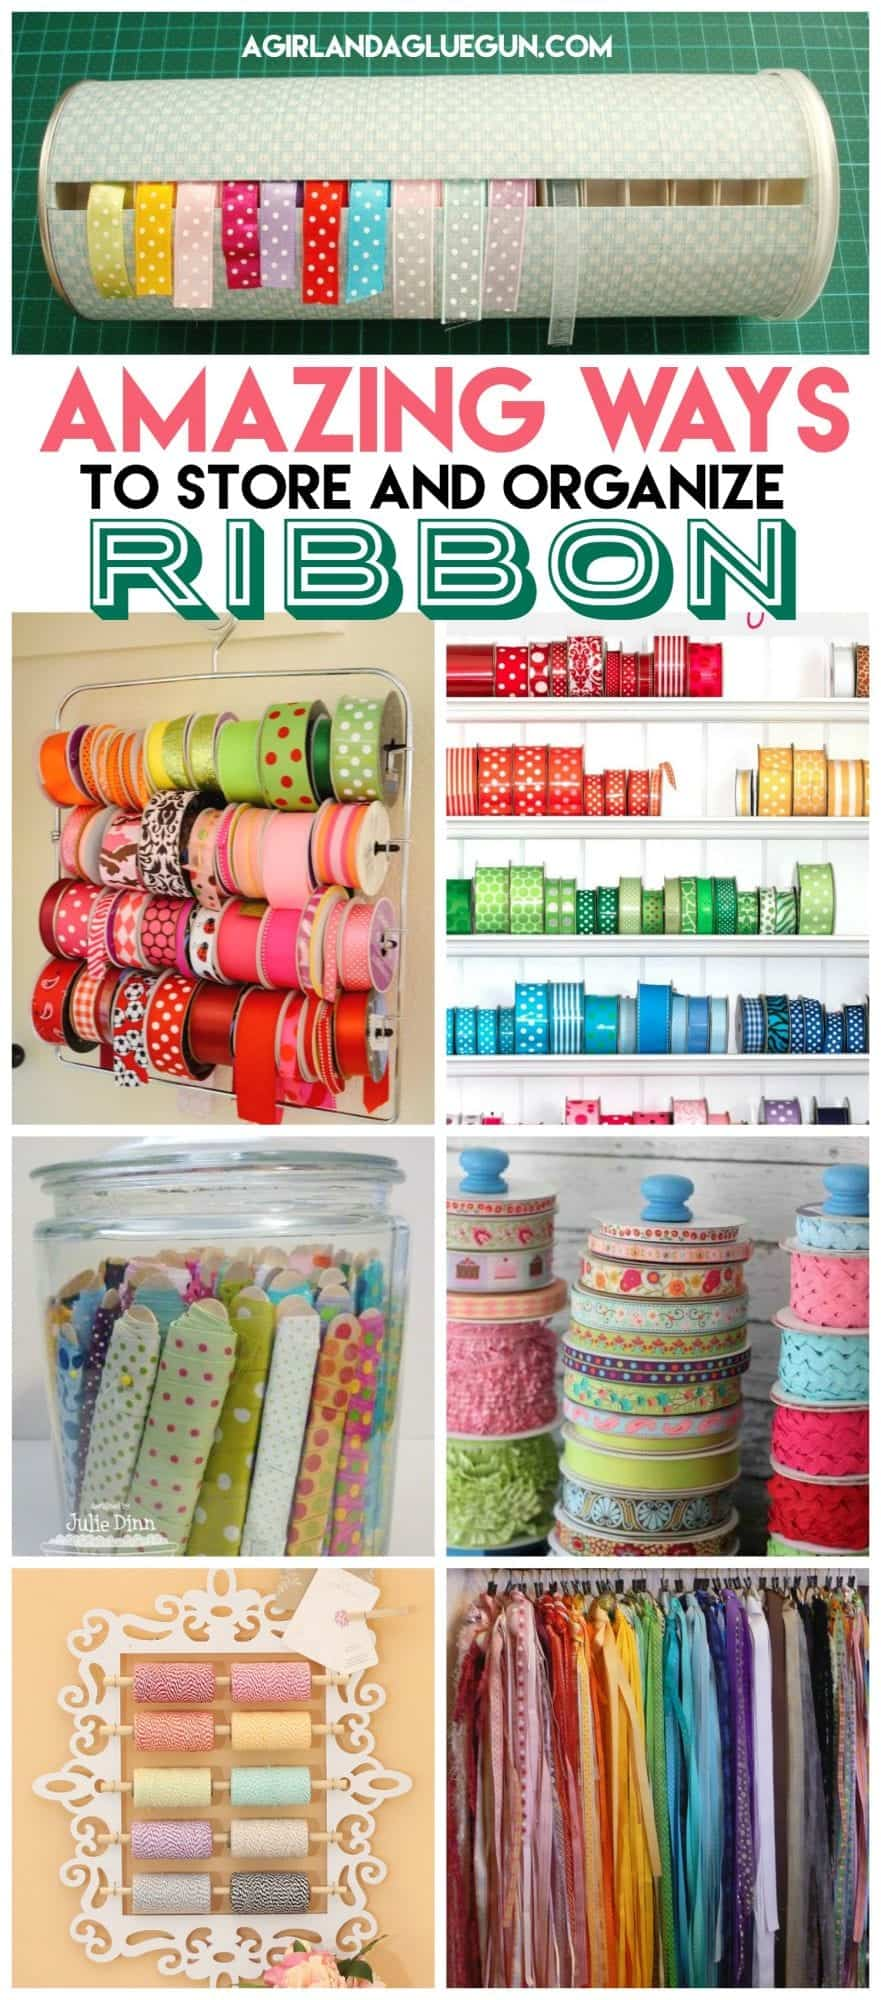 Delicieux I Started Pintersting (like Googling But Prettier) Some Ribbon Storage Ideasu2026.and  Man! So Much Inspiration!